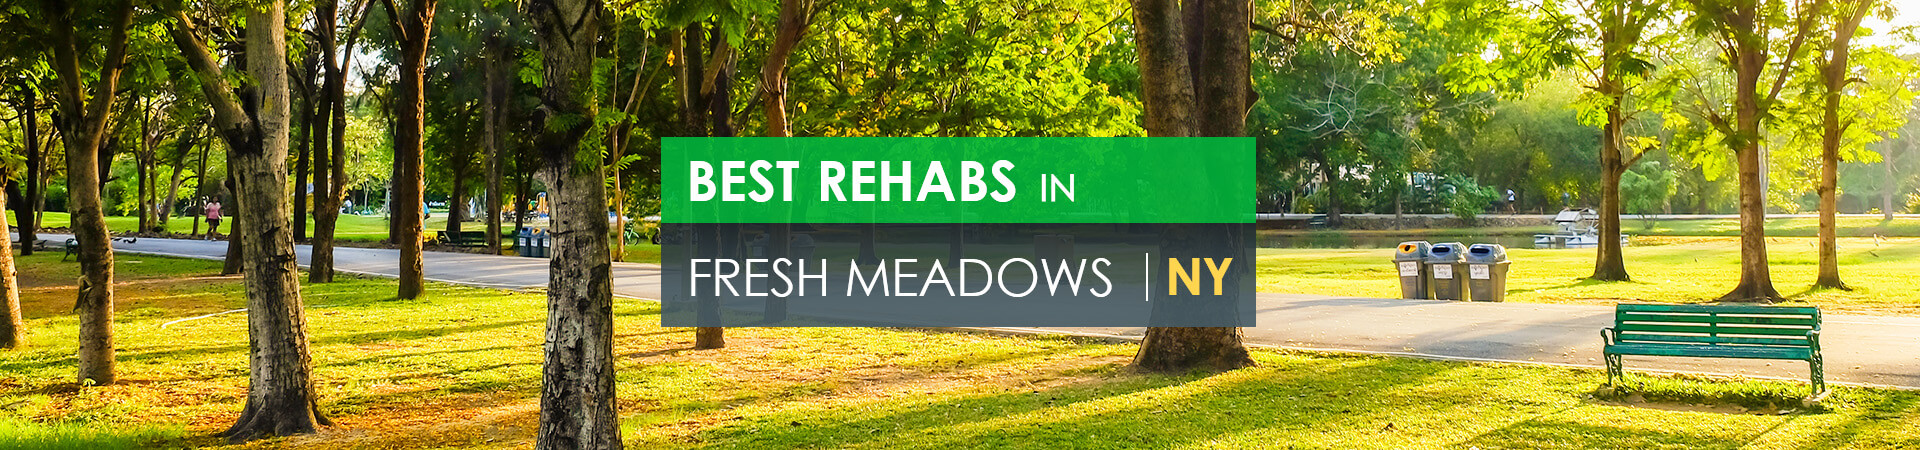 Best rehabs in Fresh Meadows, NY